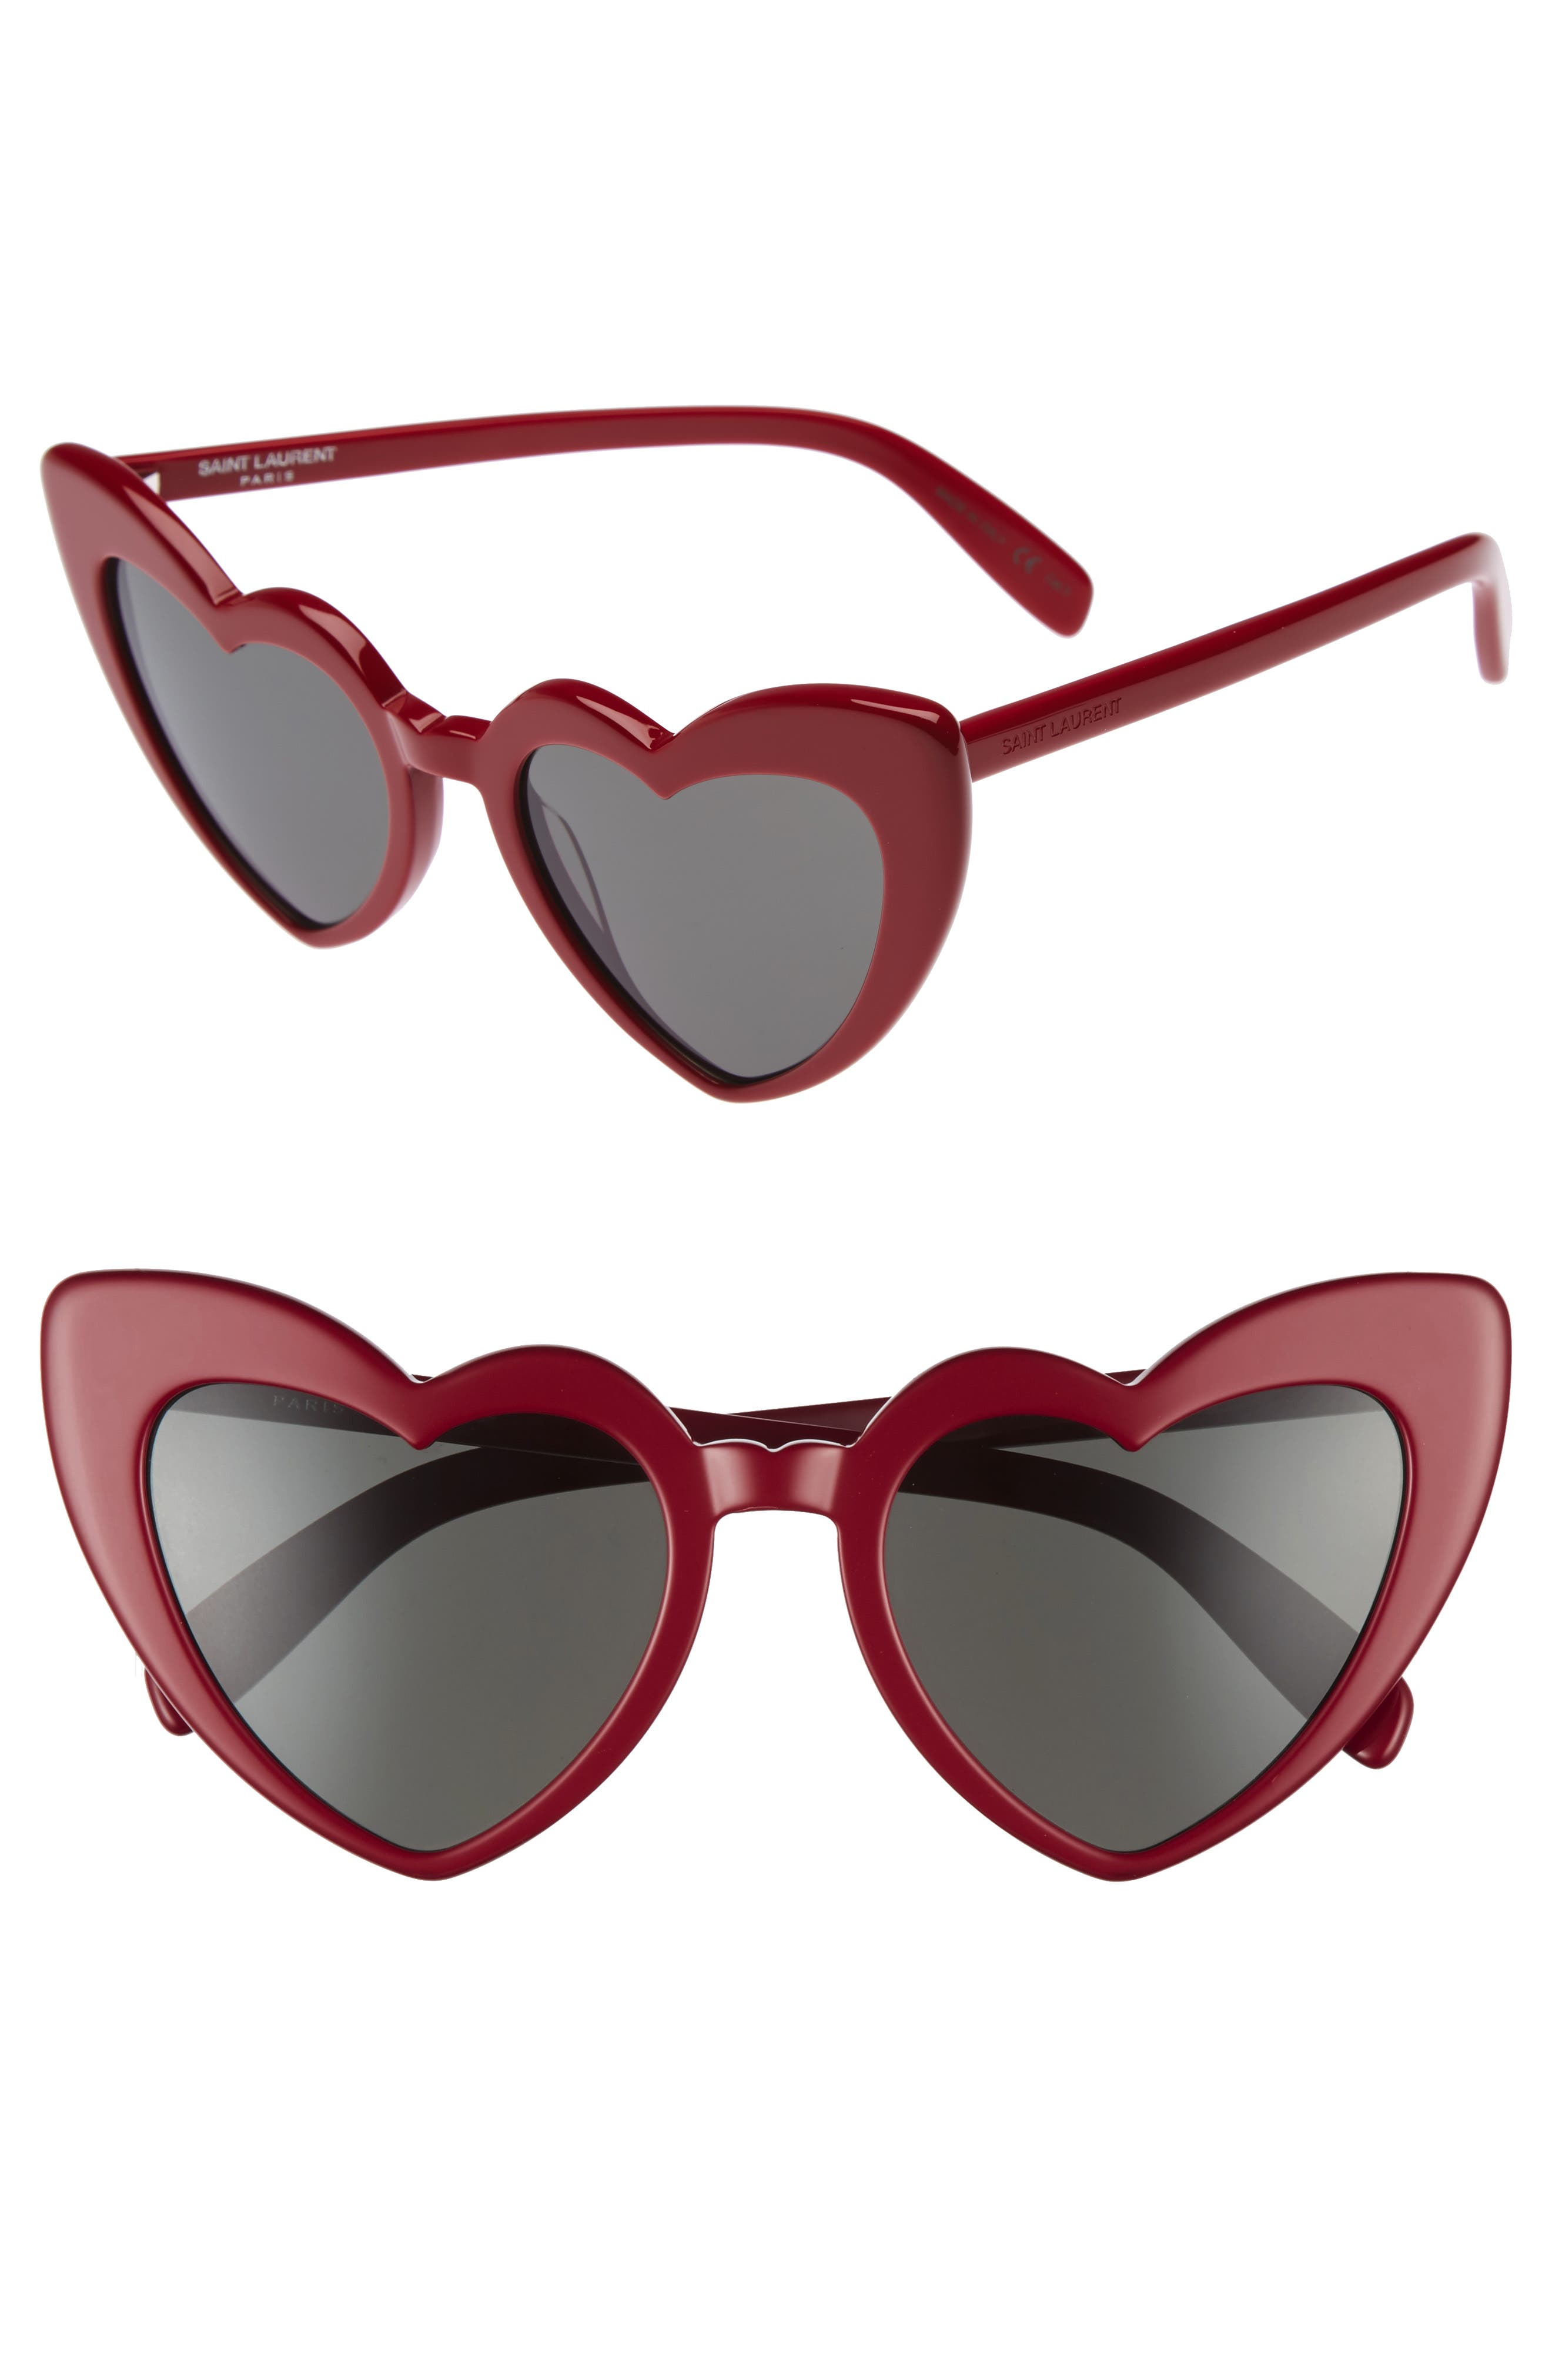 Saint Laurent Loulou 5m Heart Sunglasses - Red/ Grey